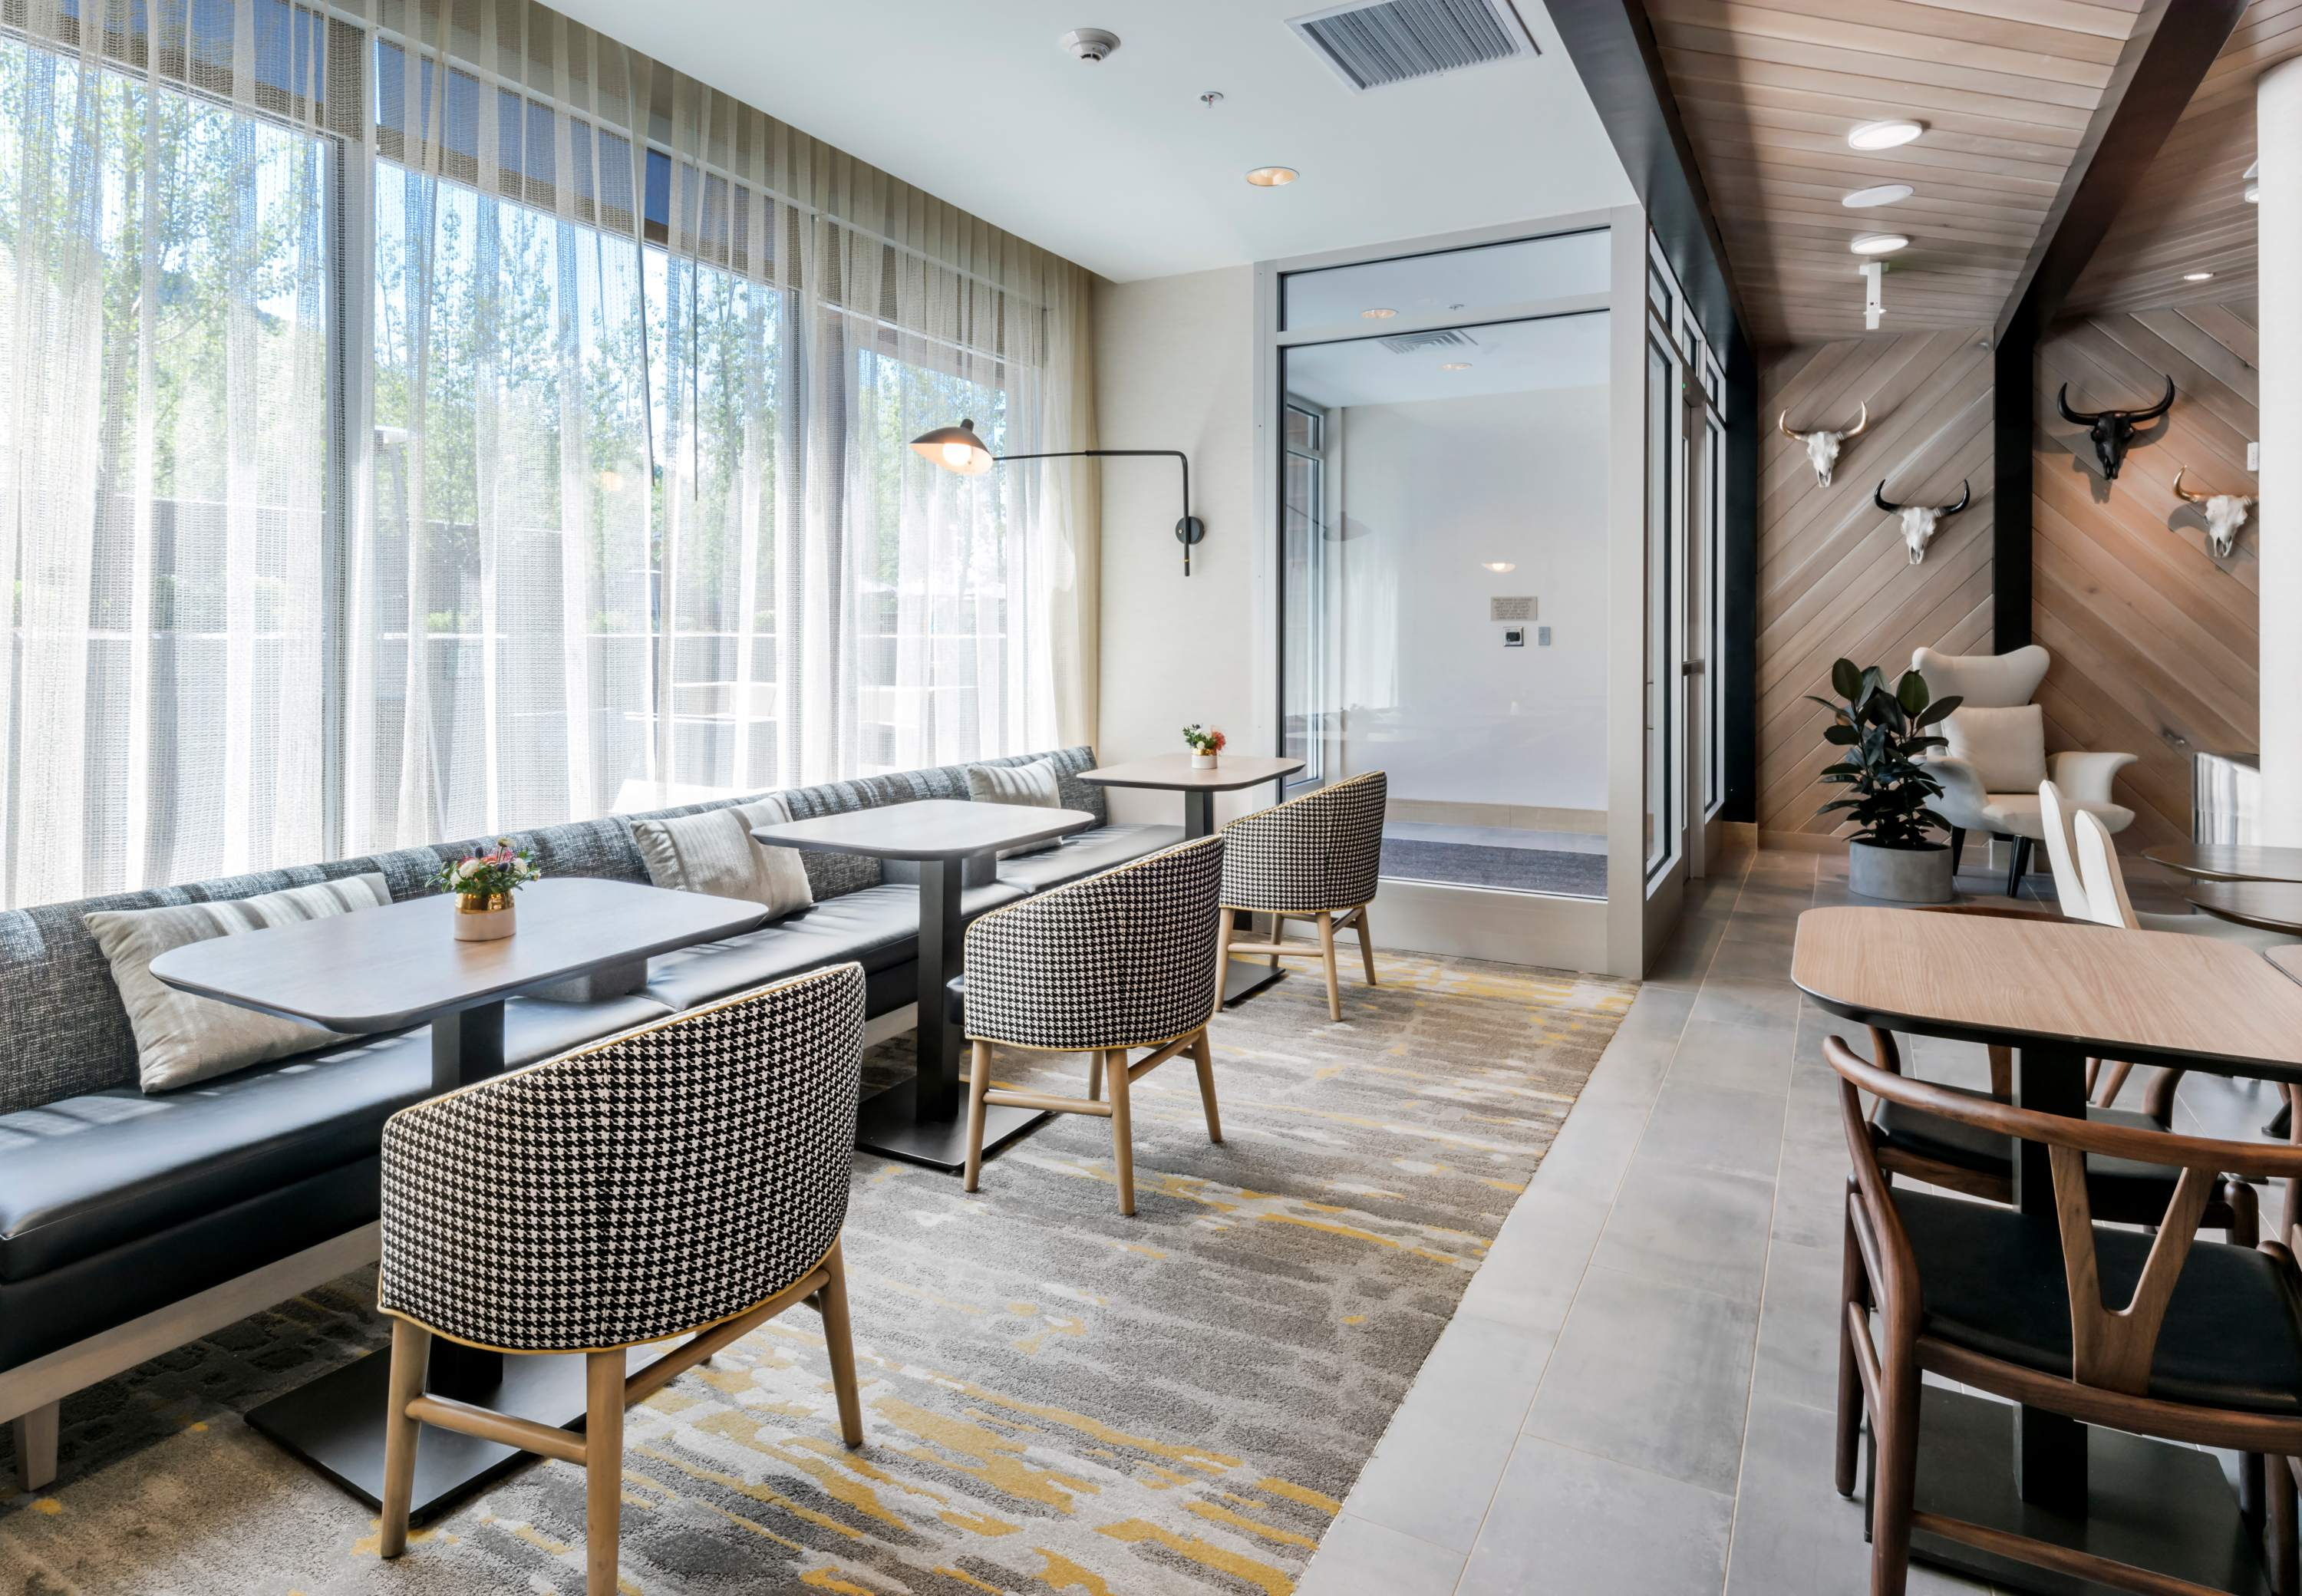 SpringHill Suites by Marriott Jackson Hole image 8